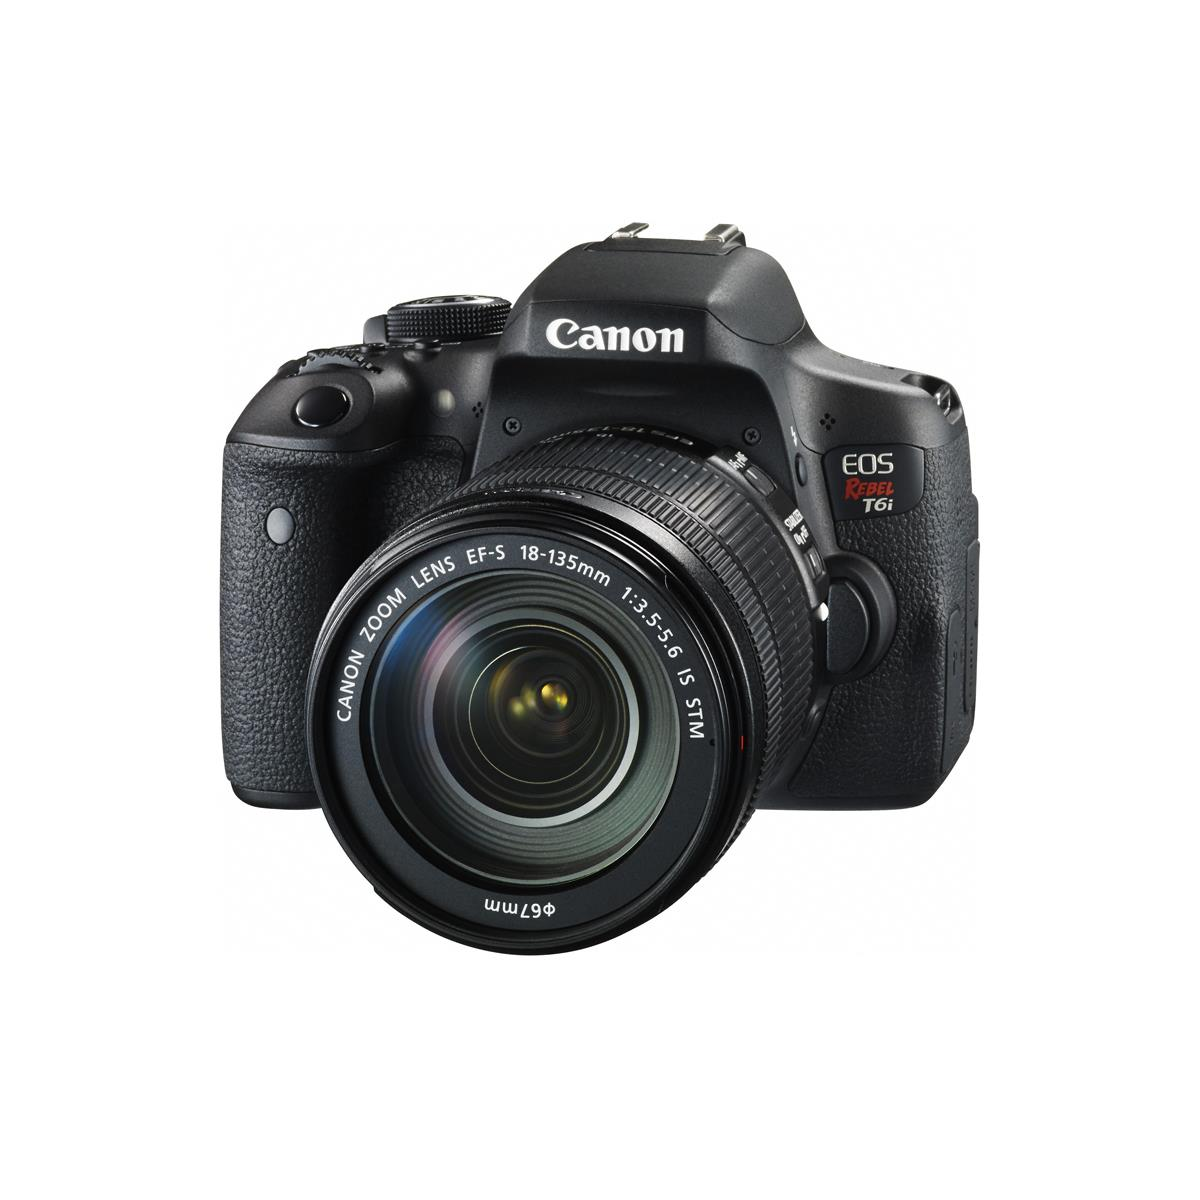 Canon EOS Rebel T6i bundle deal